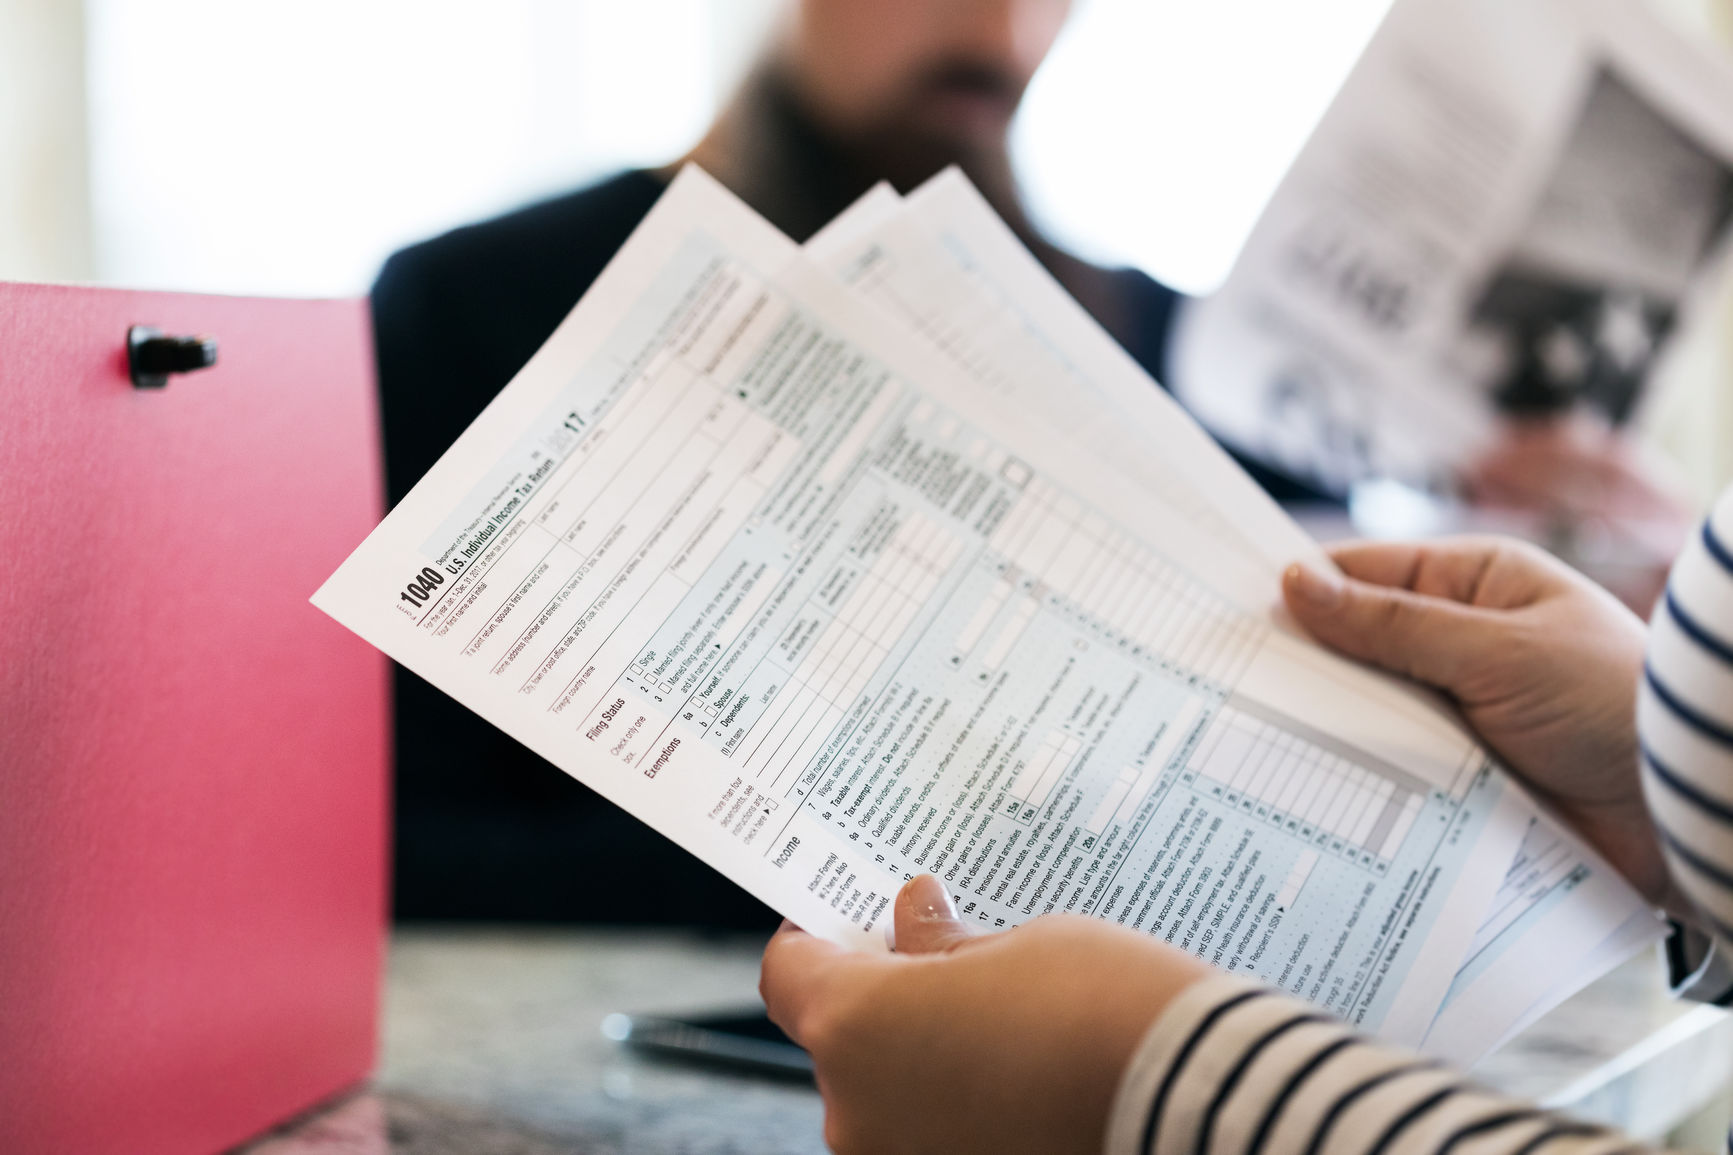 IRS Announces They Are Working on a New 1040 Tax Form: Intuit ...